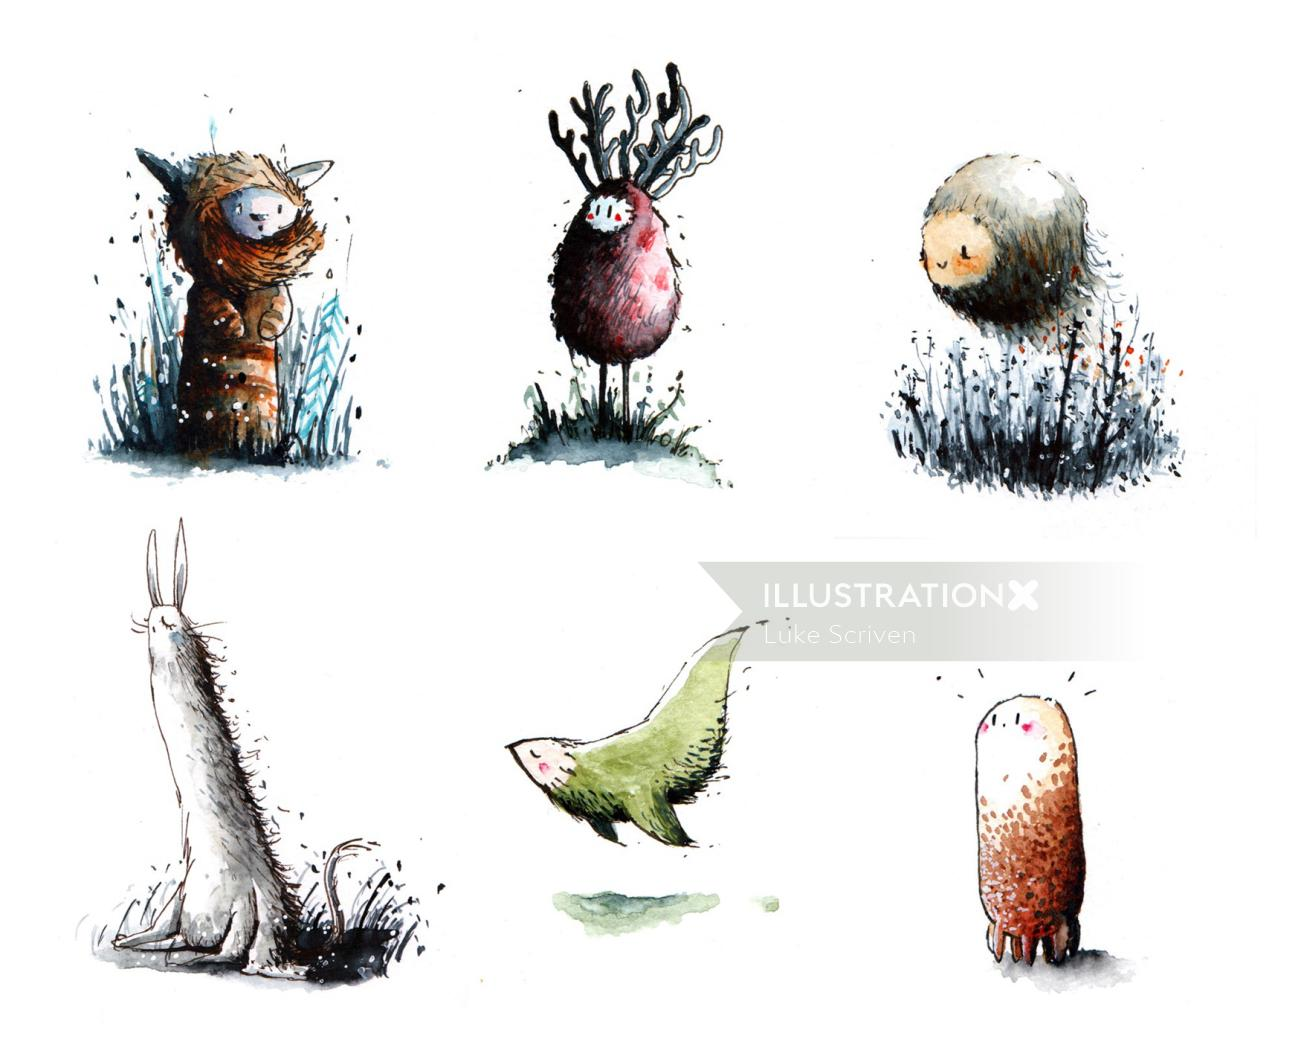 Mungarmi creatures illustration